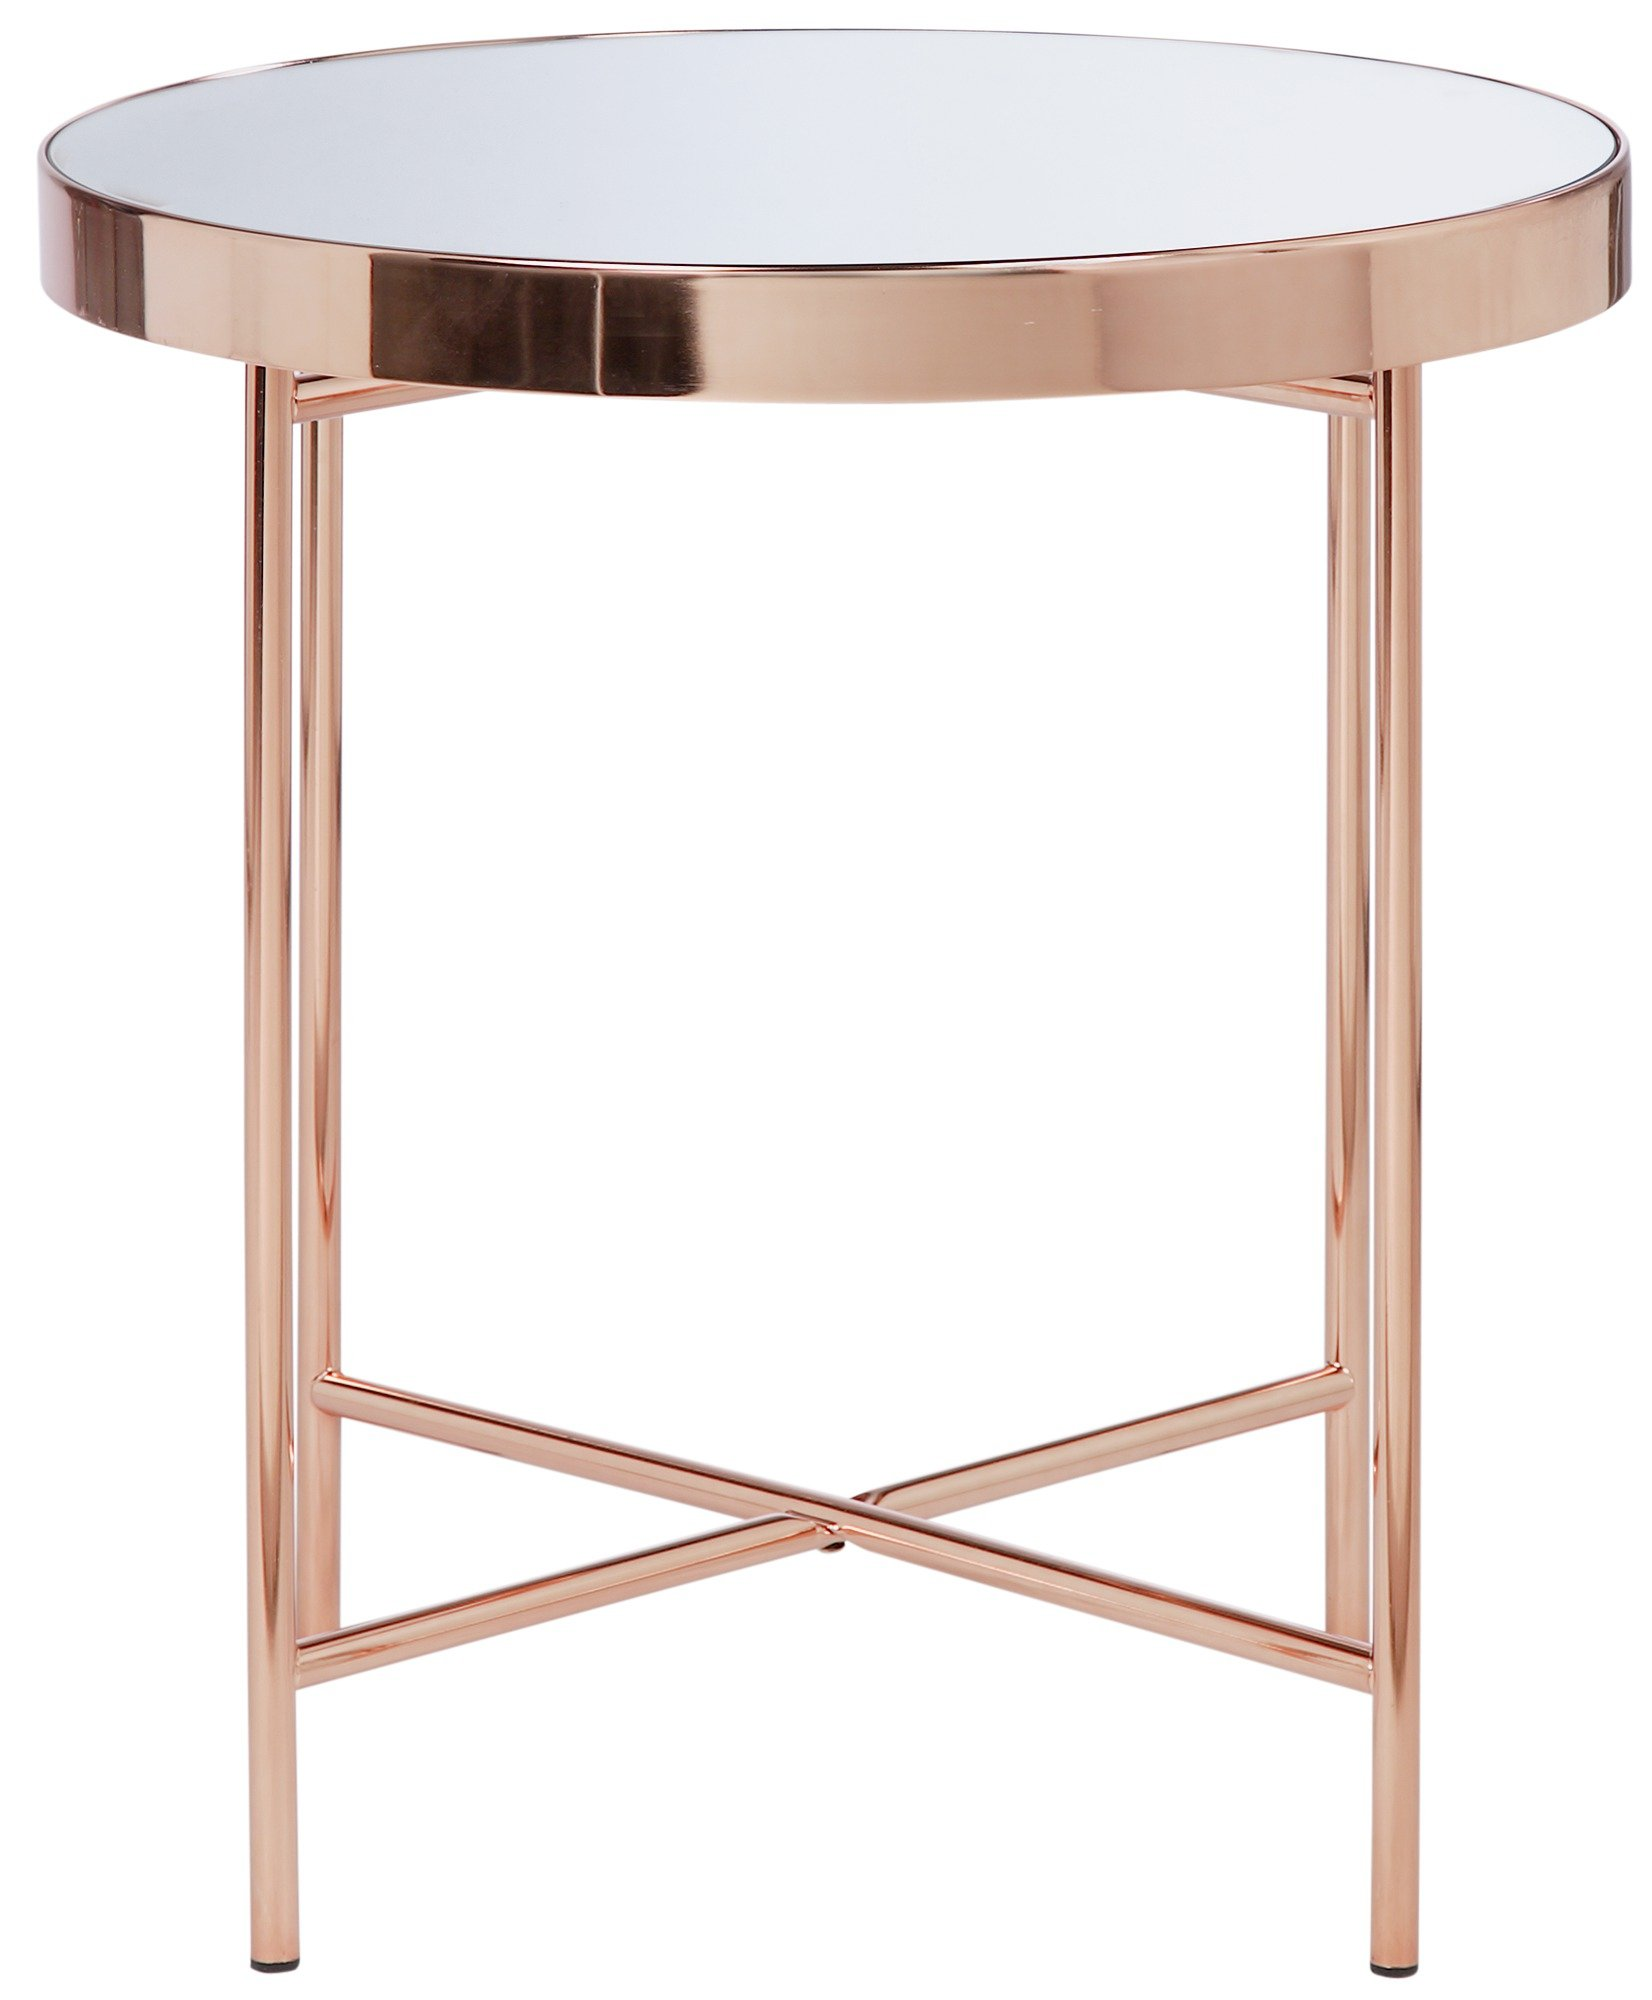 Side Table buy collection round glass top side table - copper plated at argos